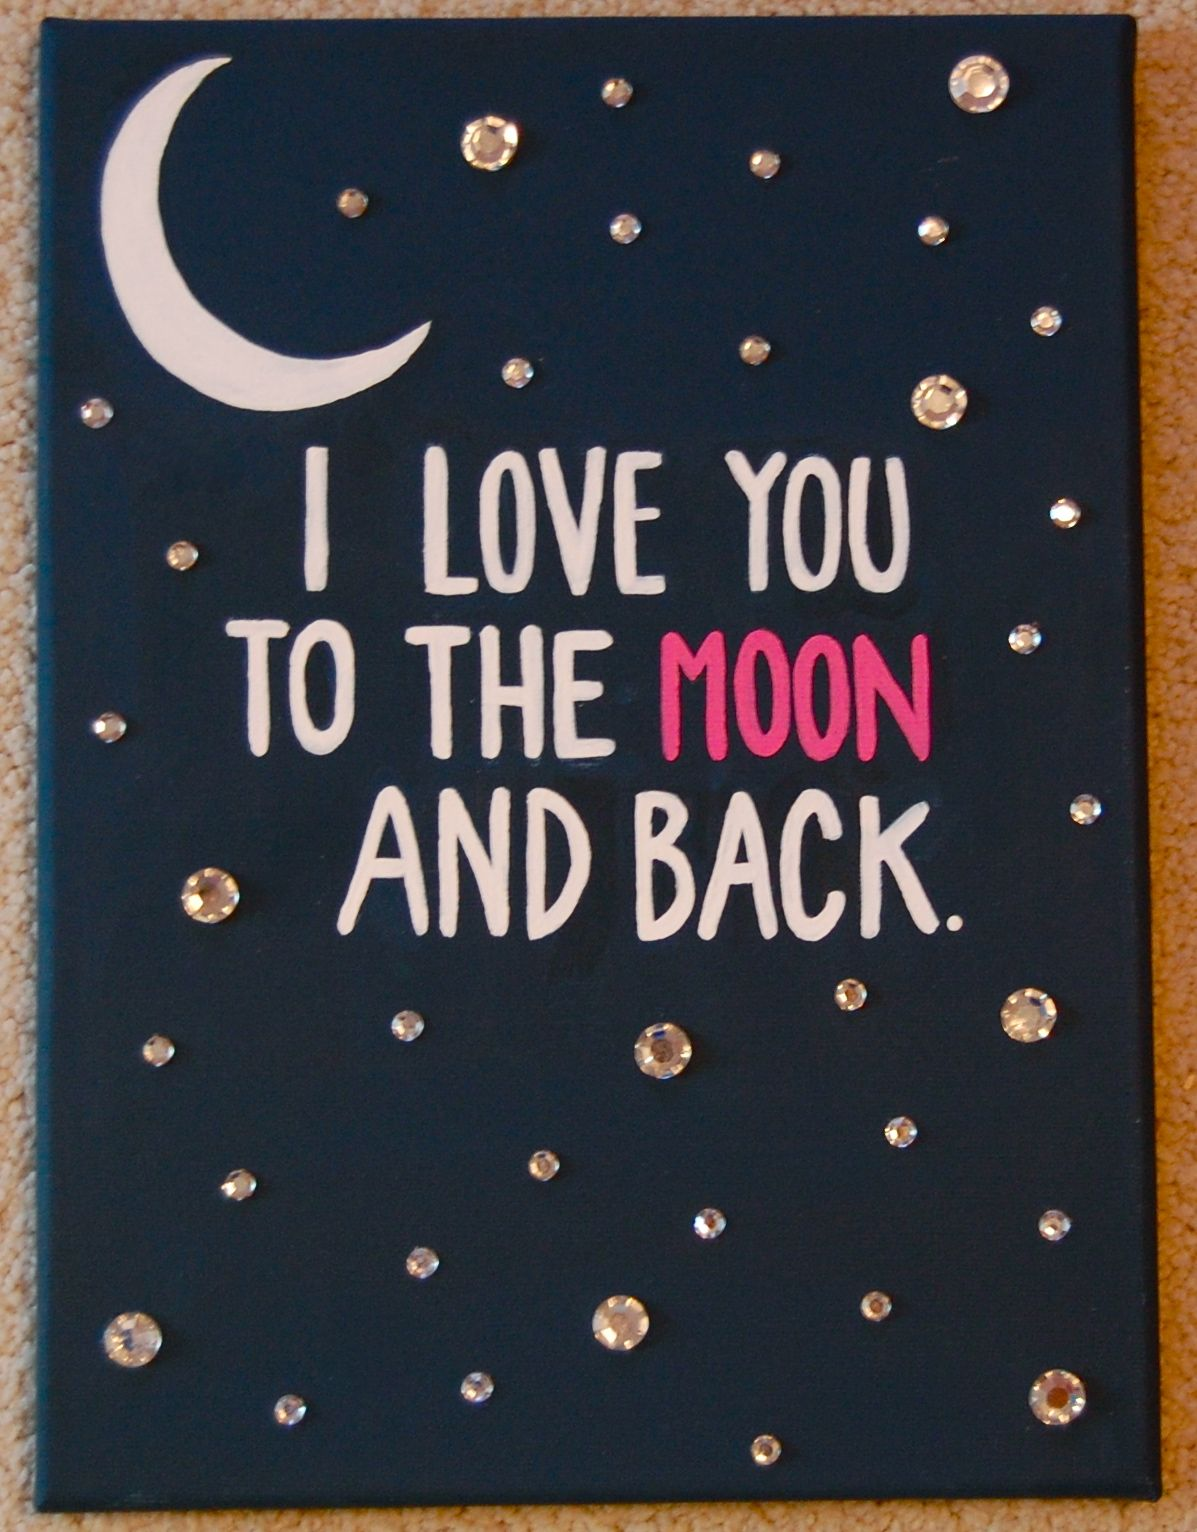 Panneau Salle De Bain Gamma ~ i love you to the moon and back craft gamma phi beta gamma phi